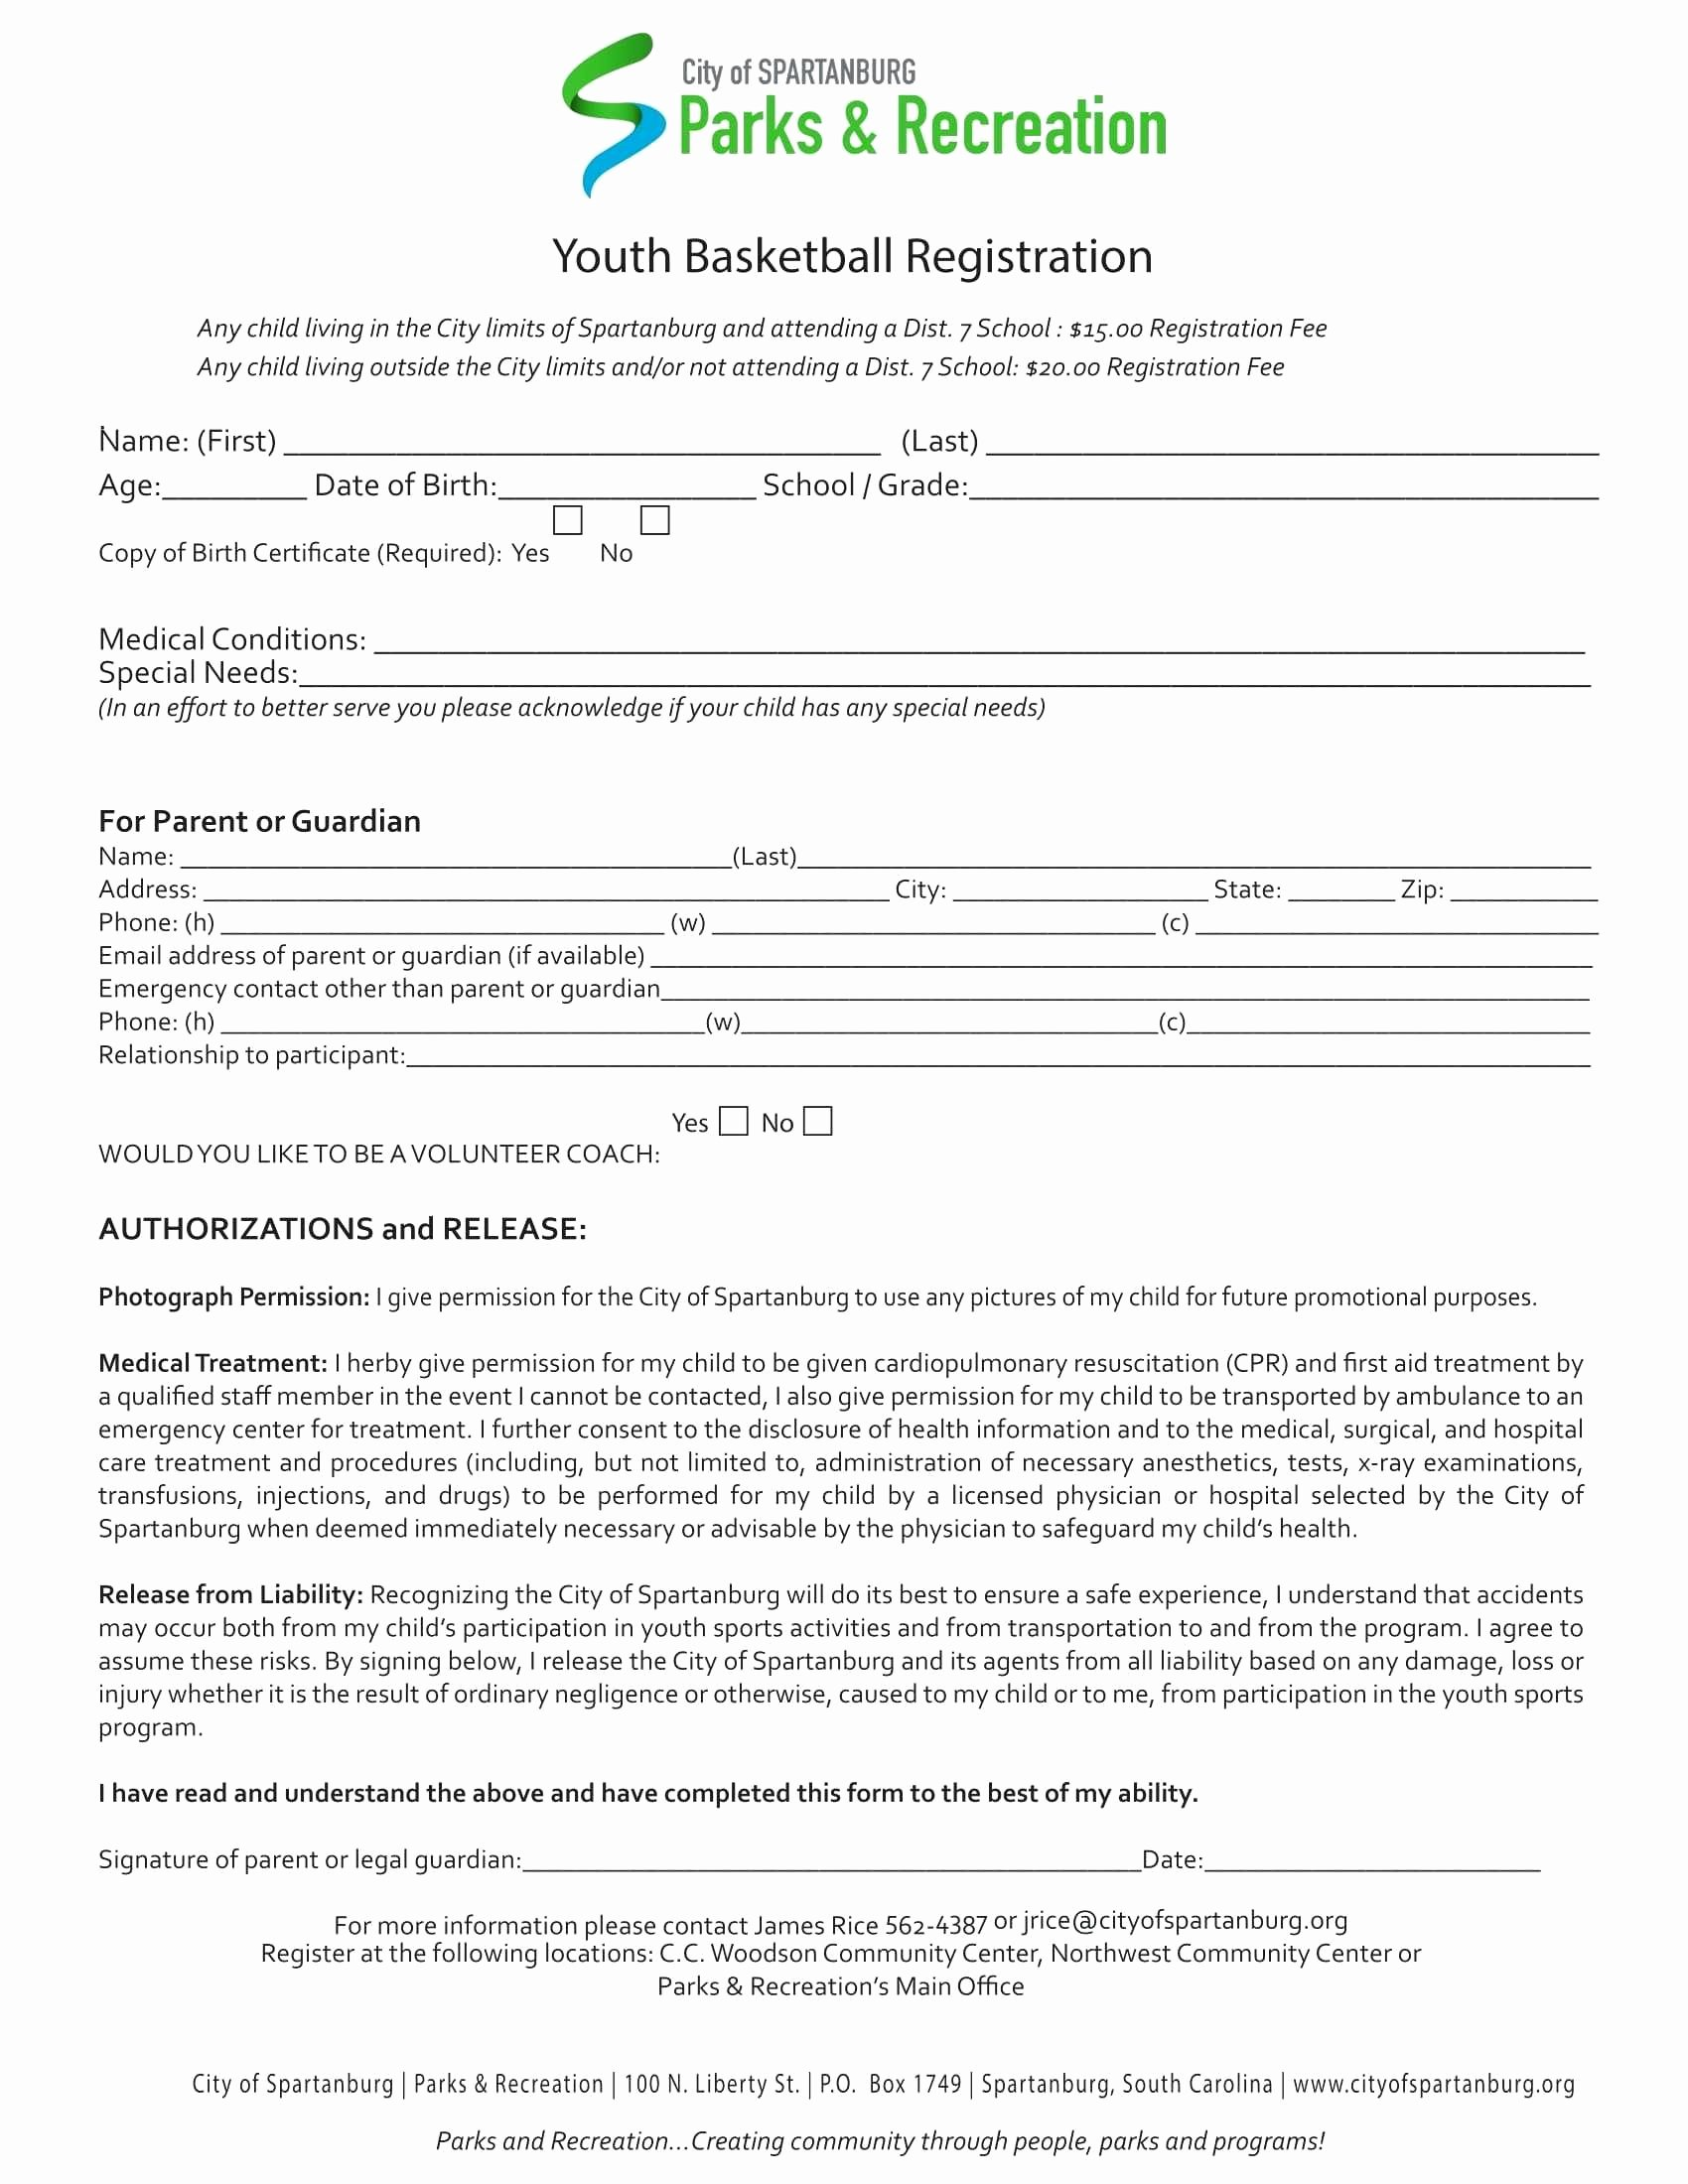 School Registration form Template Luxury School Registration form Template Word